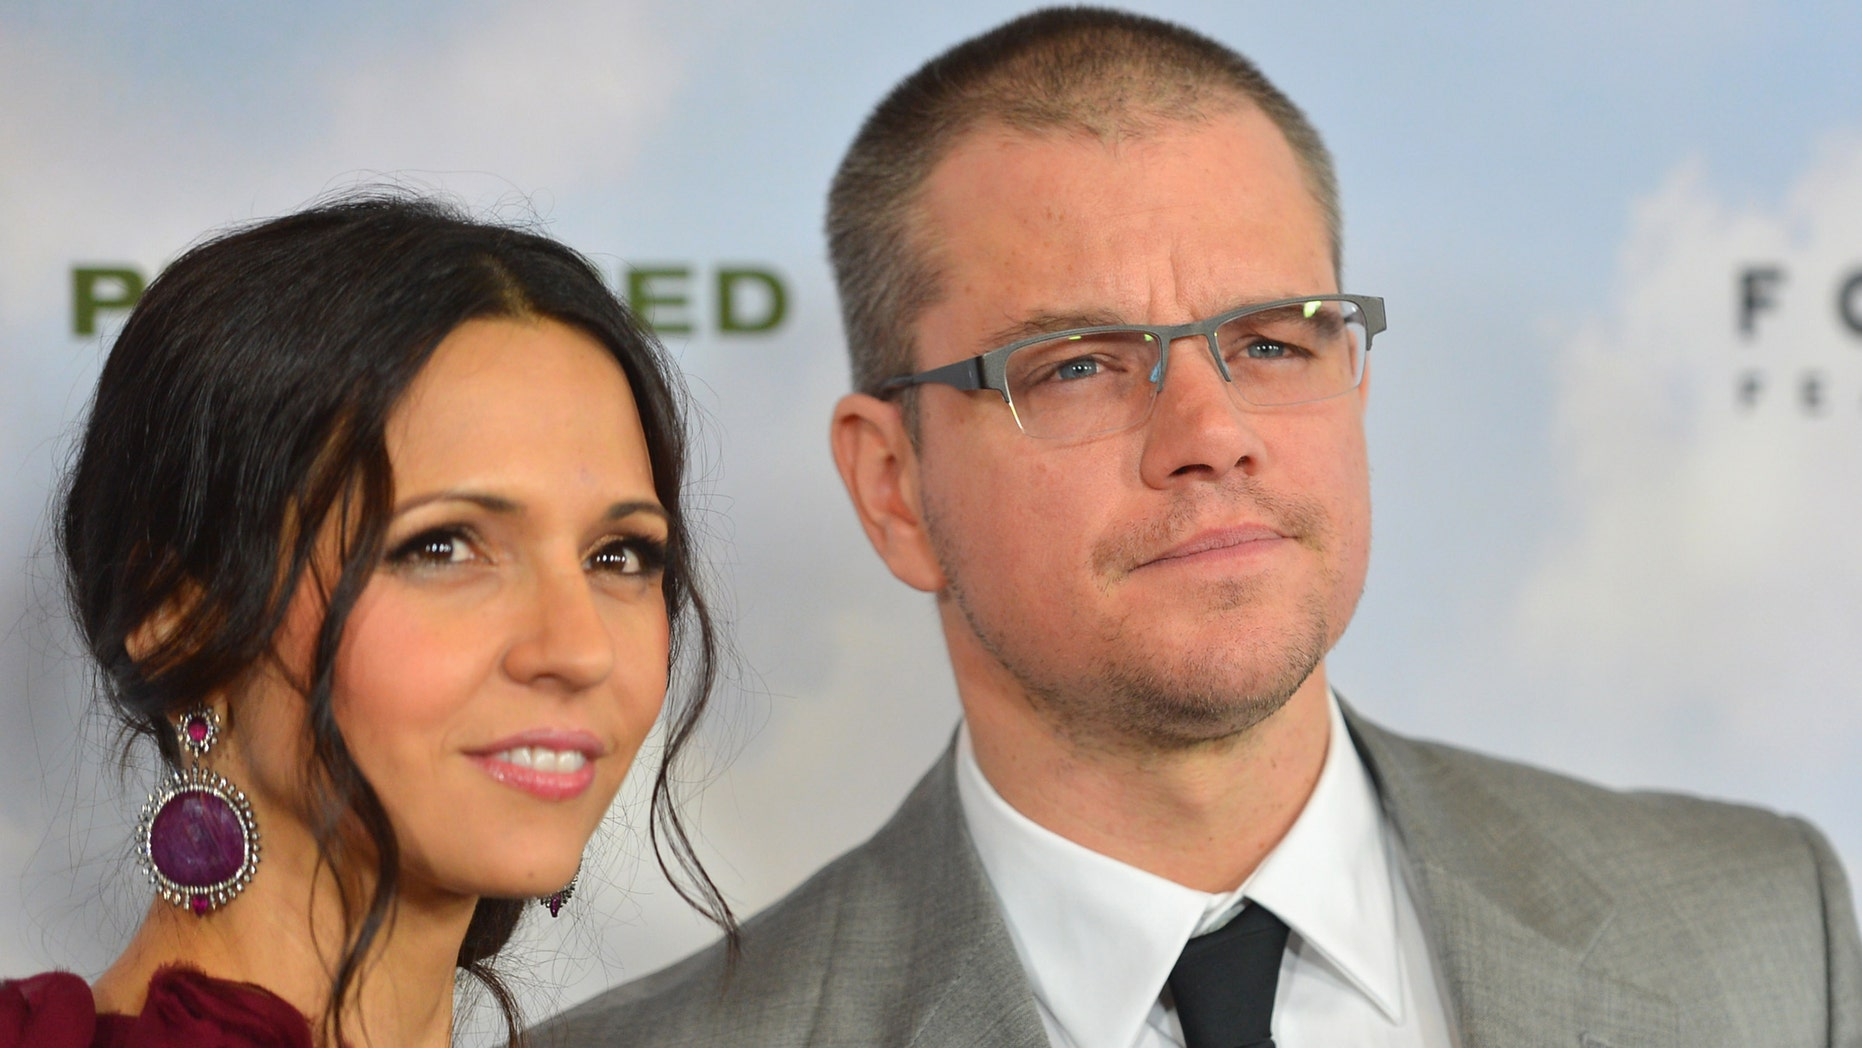 """LOS ANGELES, CA - DECEMBER 06:  Luciana Baroso and actor Matt Damon arrive to the premiere of Focus Features' """"Promised Land"""" at the Directors Guild Of America on December 6, 2012 in Los Angeles, California.  (Photo by Alberto E. Rodriguez/Getty Images)"""